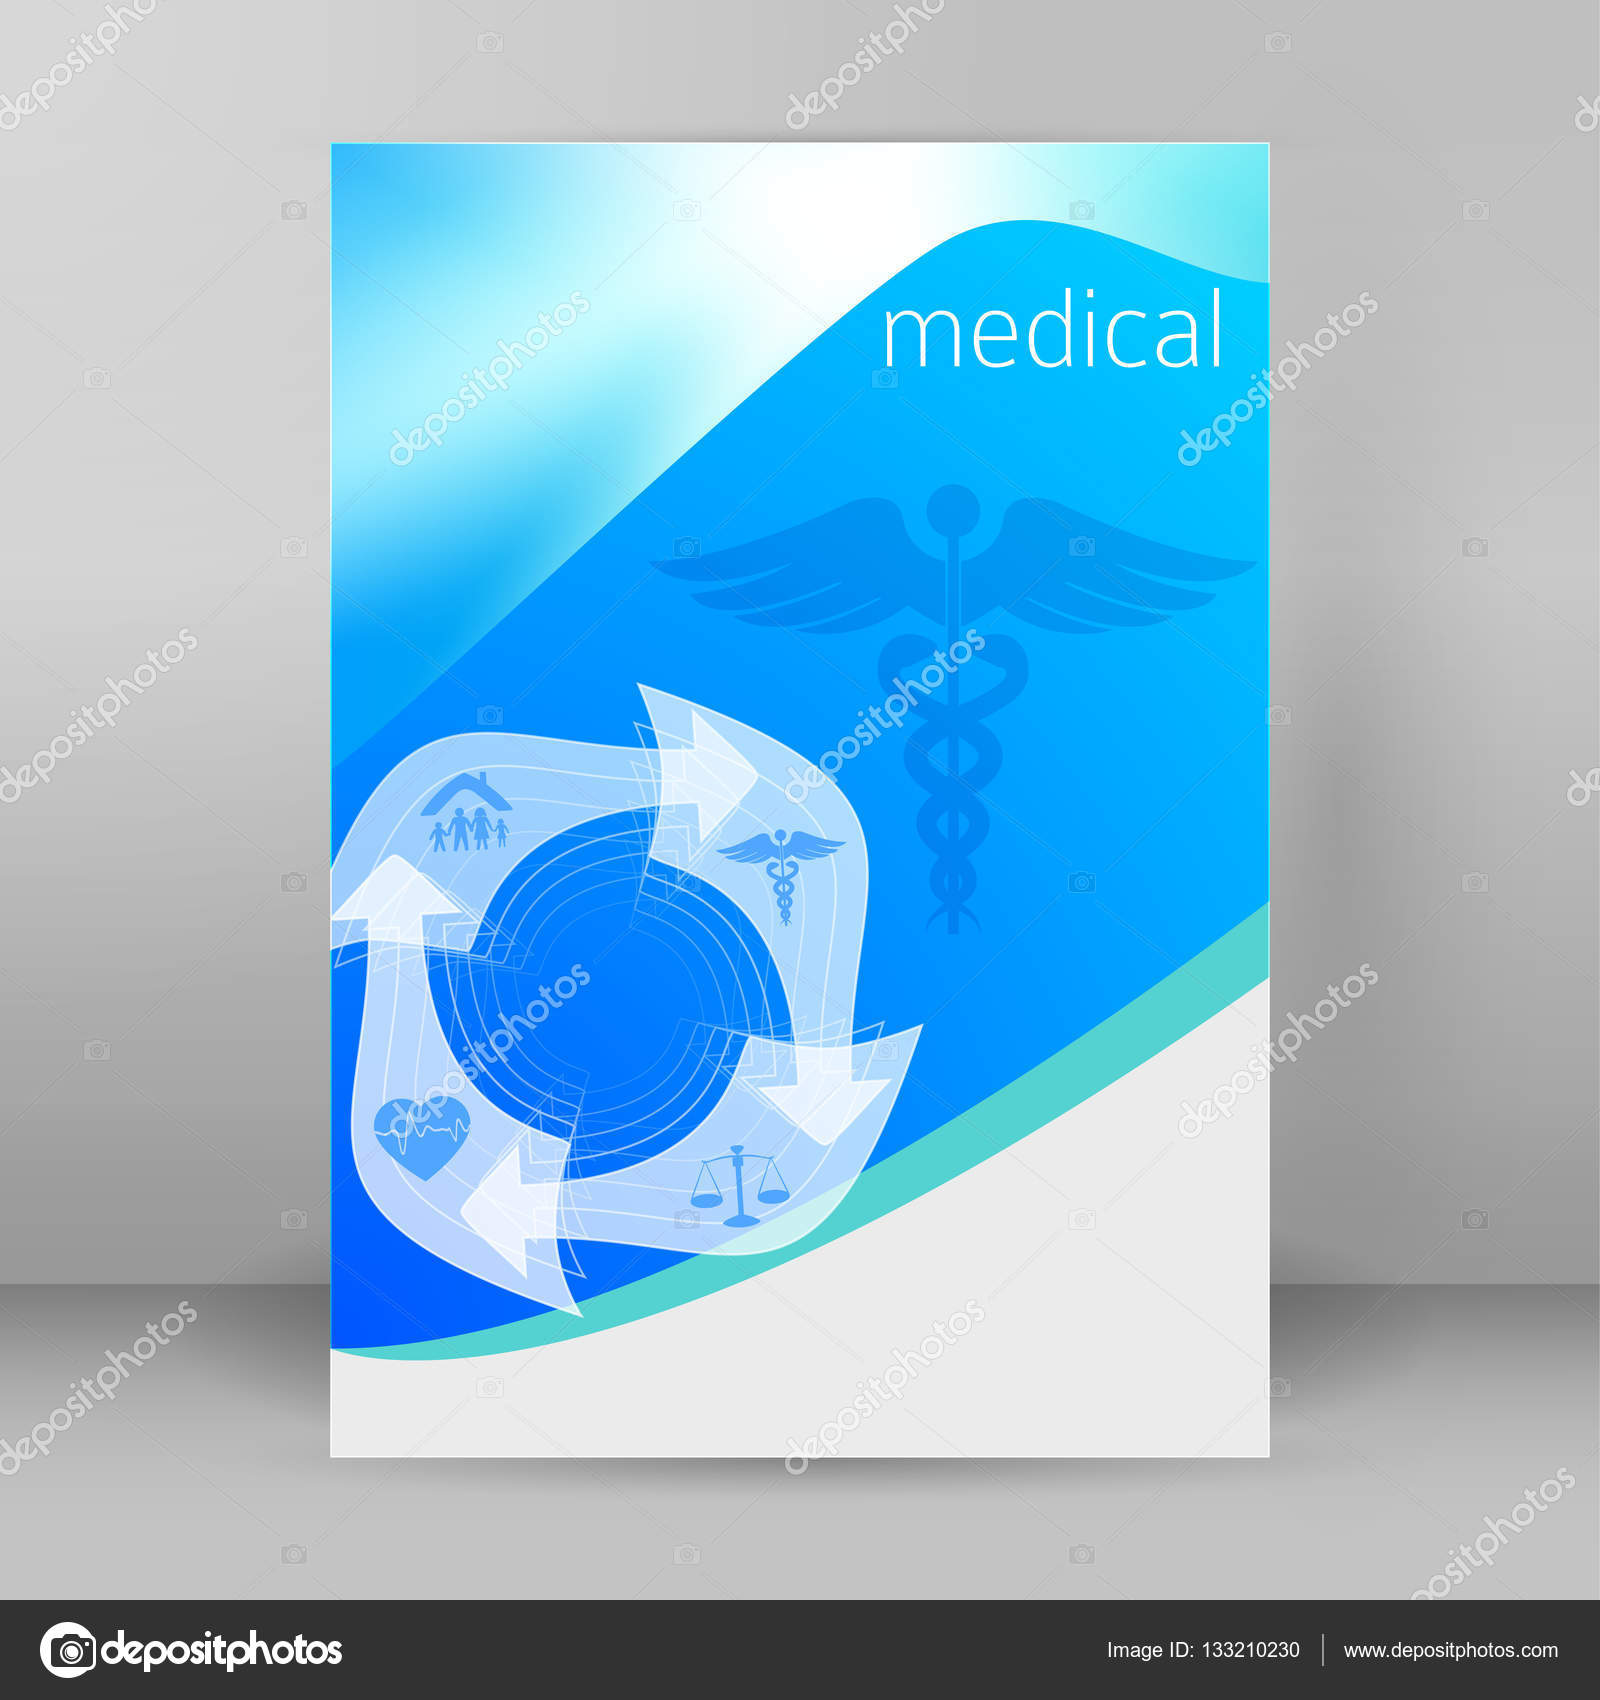 medicine cover page leaflet advertising report03 stock vector blue medical background abstract concept health care or medicine technology vector illustration eps 10 graphic design elements vertical banner